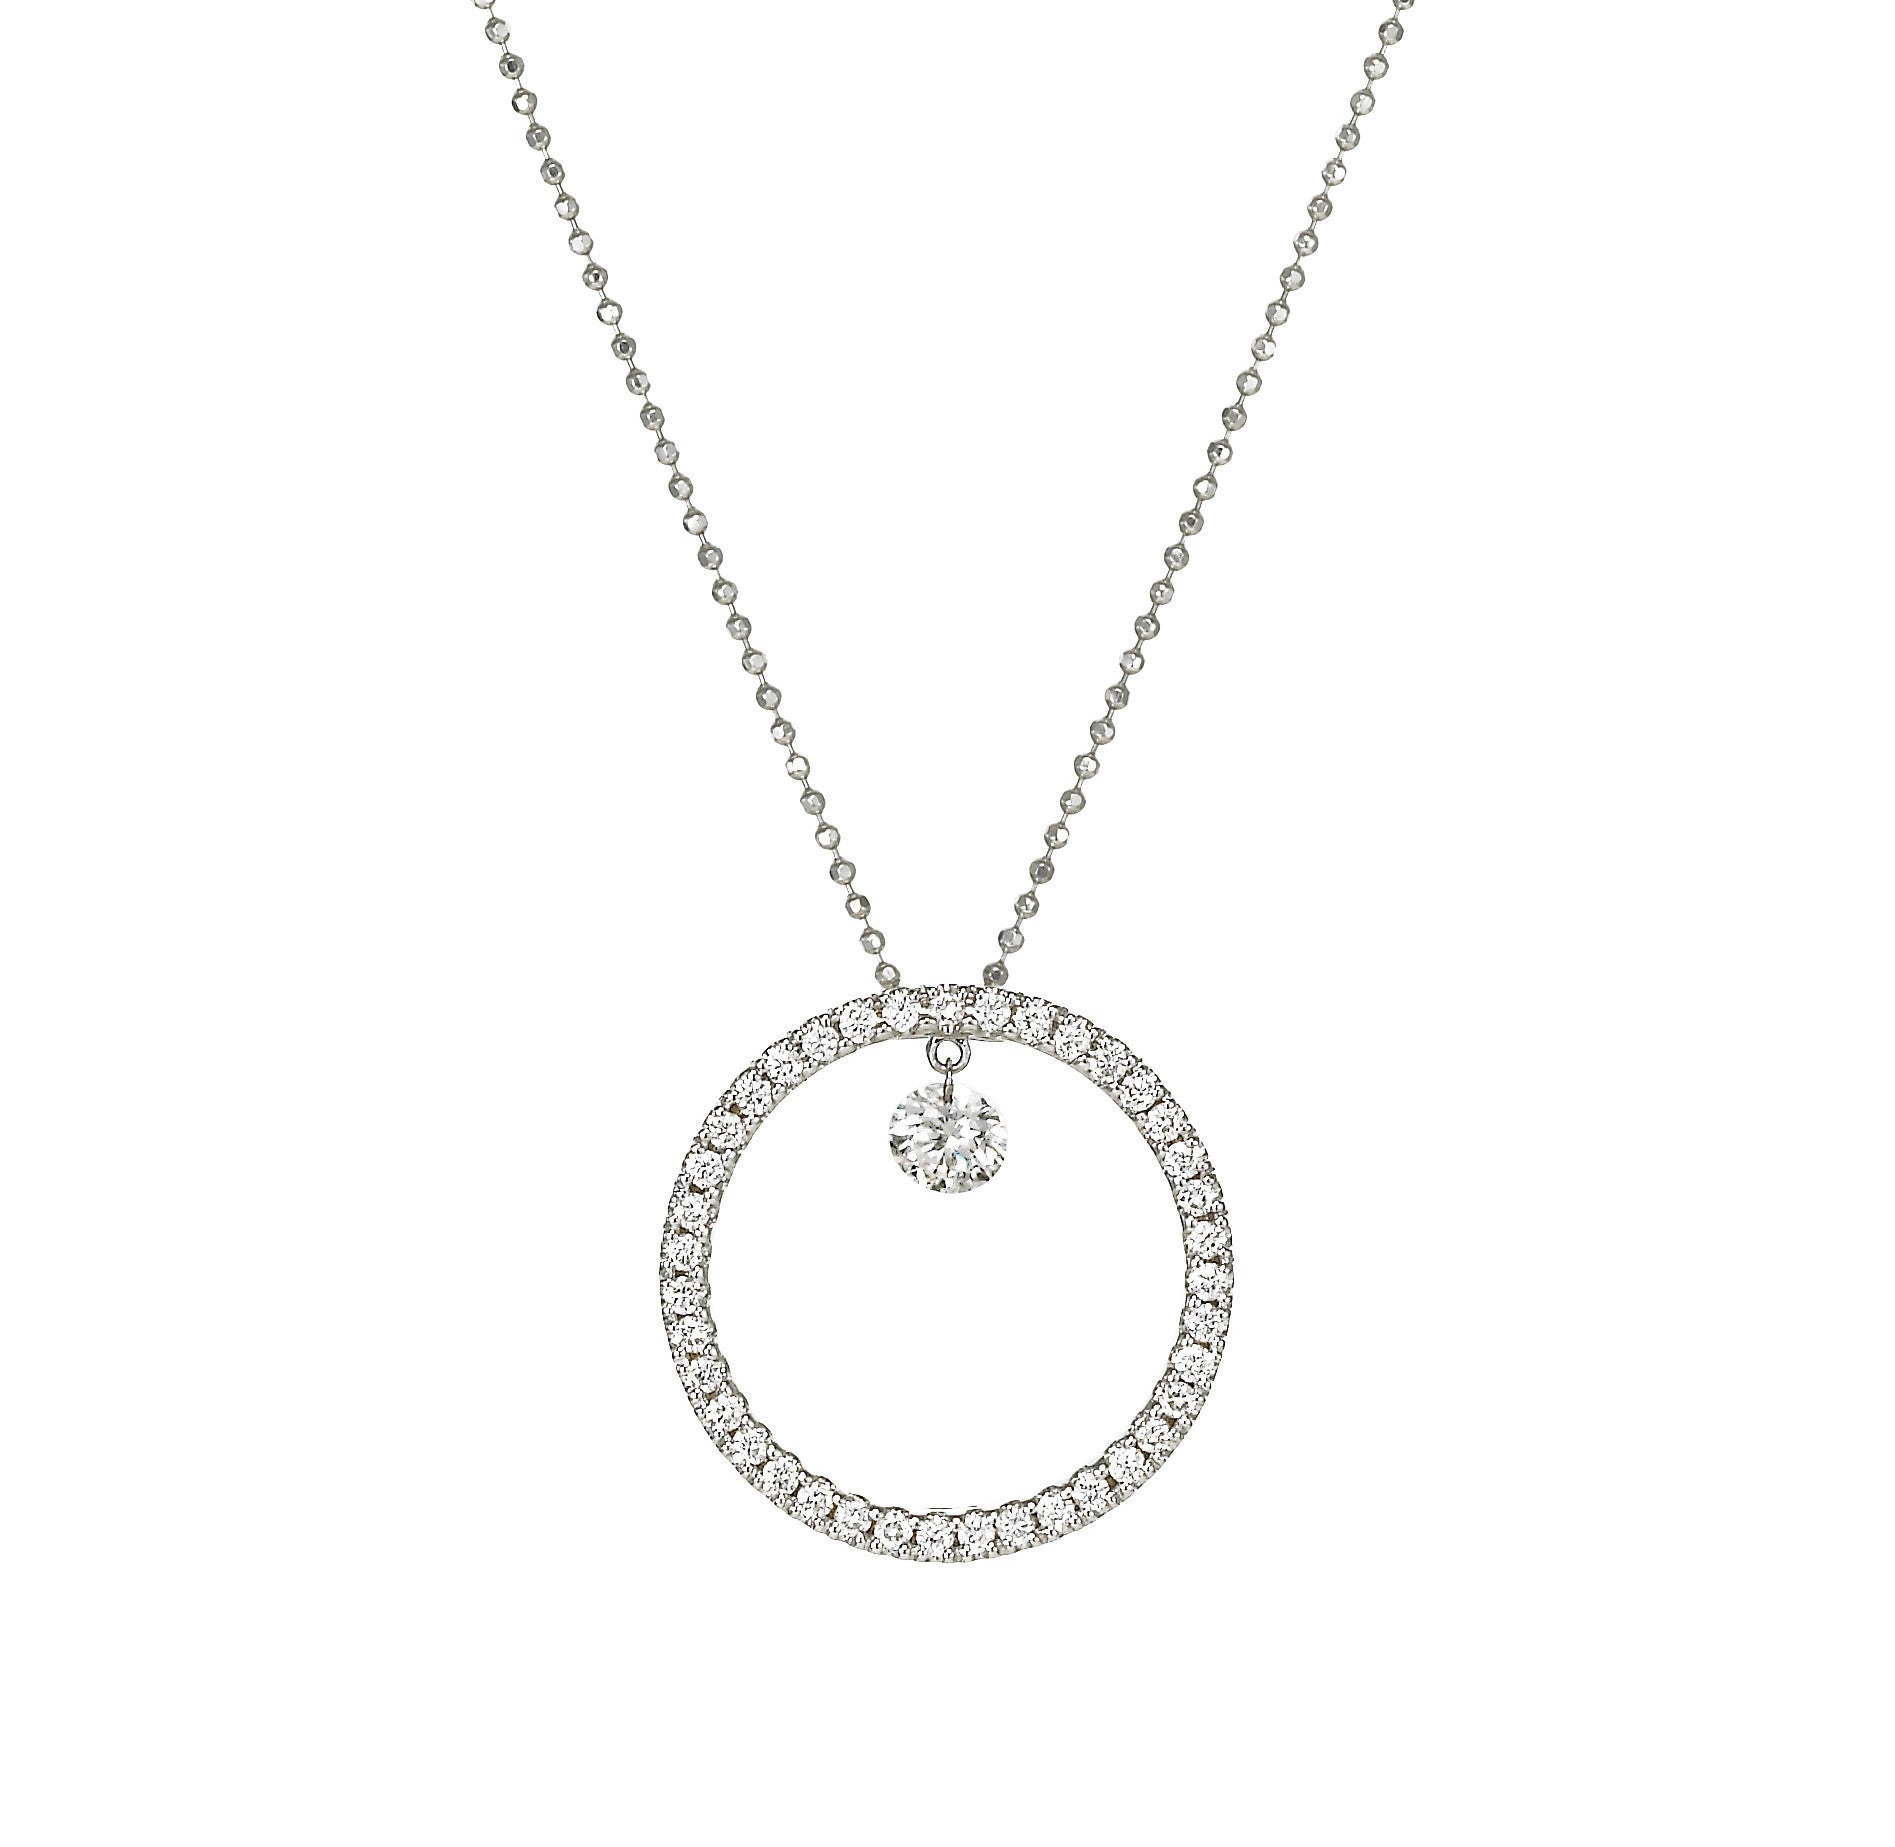 round measure approx pendant price total the by a carat diamonds necklace white diamond img fine contemporary this is very dancing gold weight each of for that in